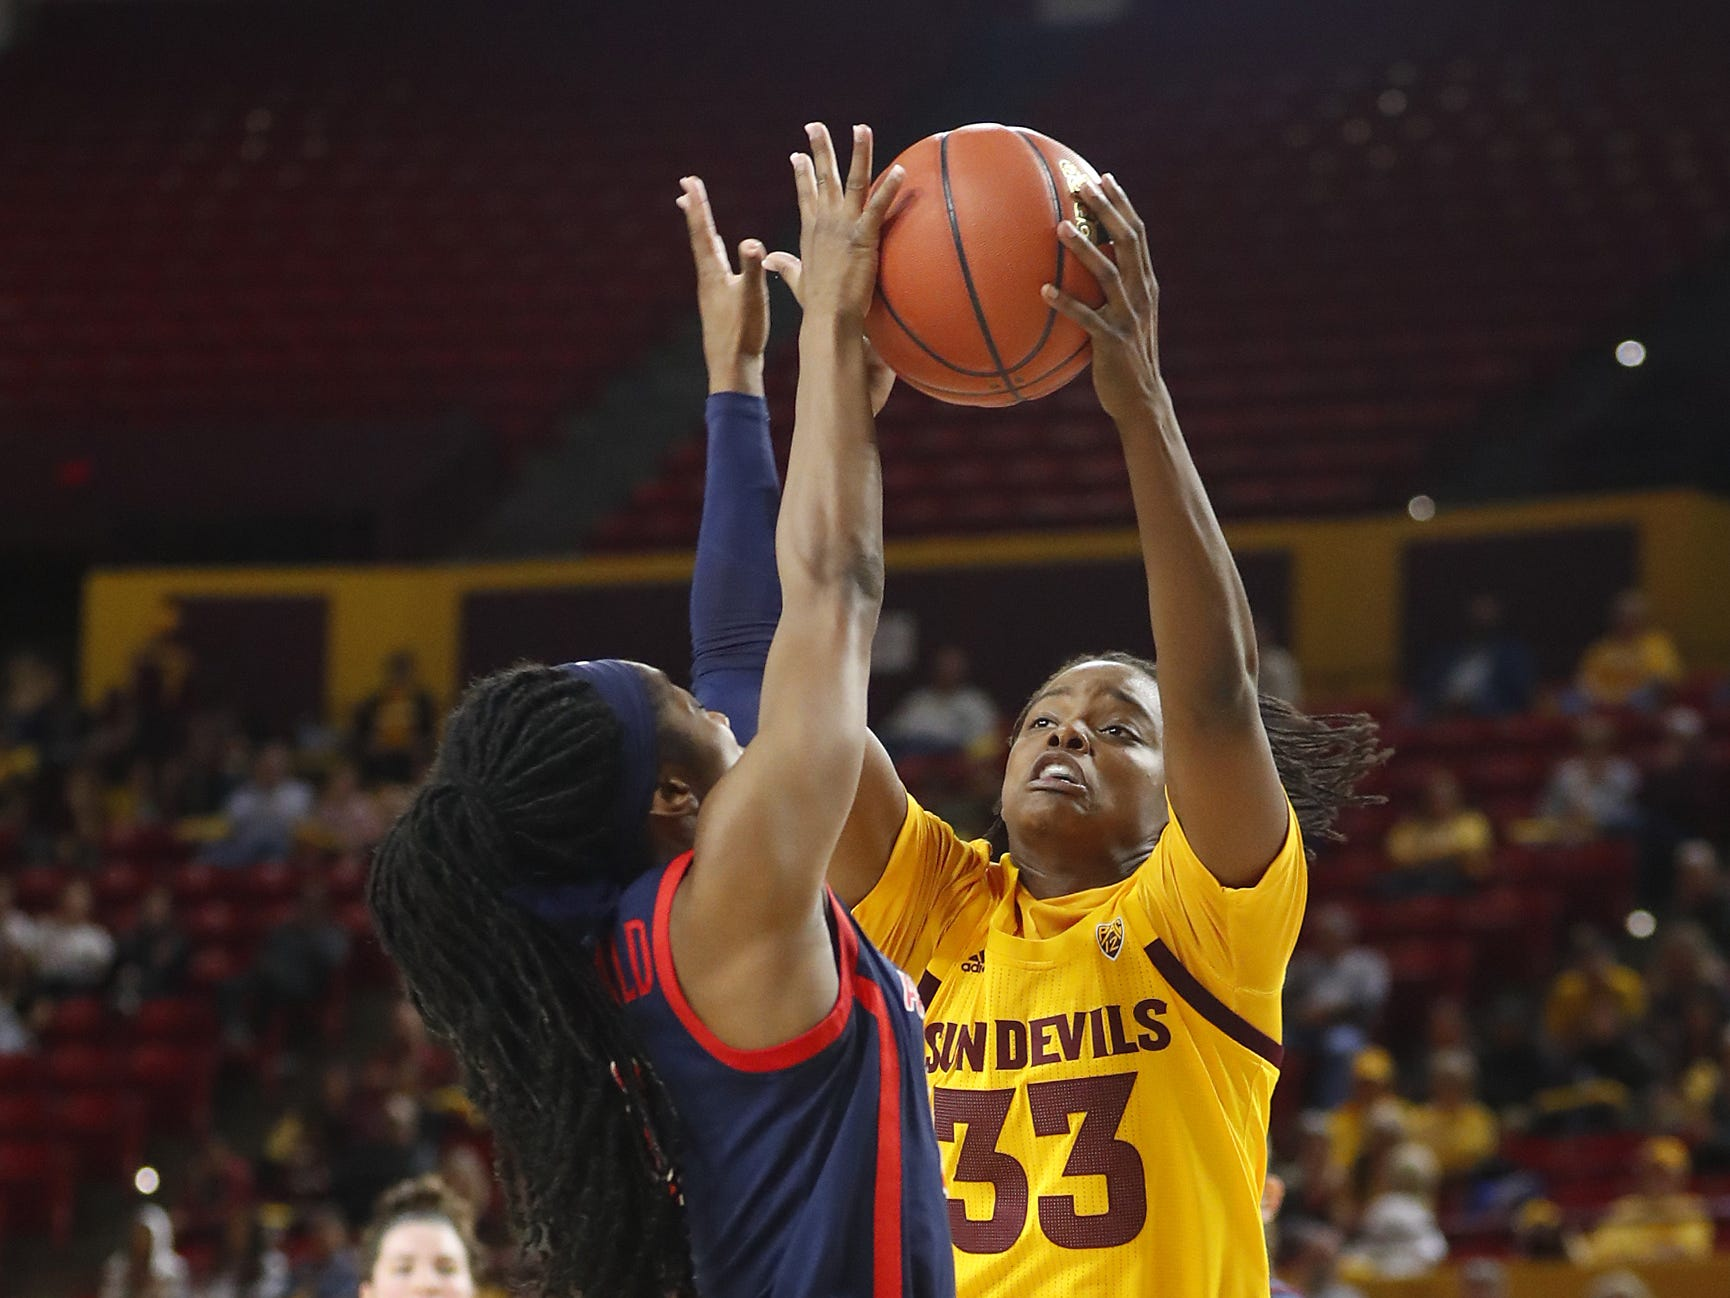 ASU's Charnea Johnson-Chapman (33) shoots against Arizona's Aari McDonald (2) during the second half at Wells Fargo Arena in Tempe, Ariz. on February 1, 2019.